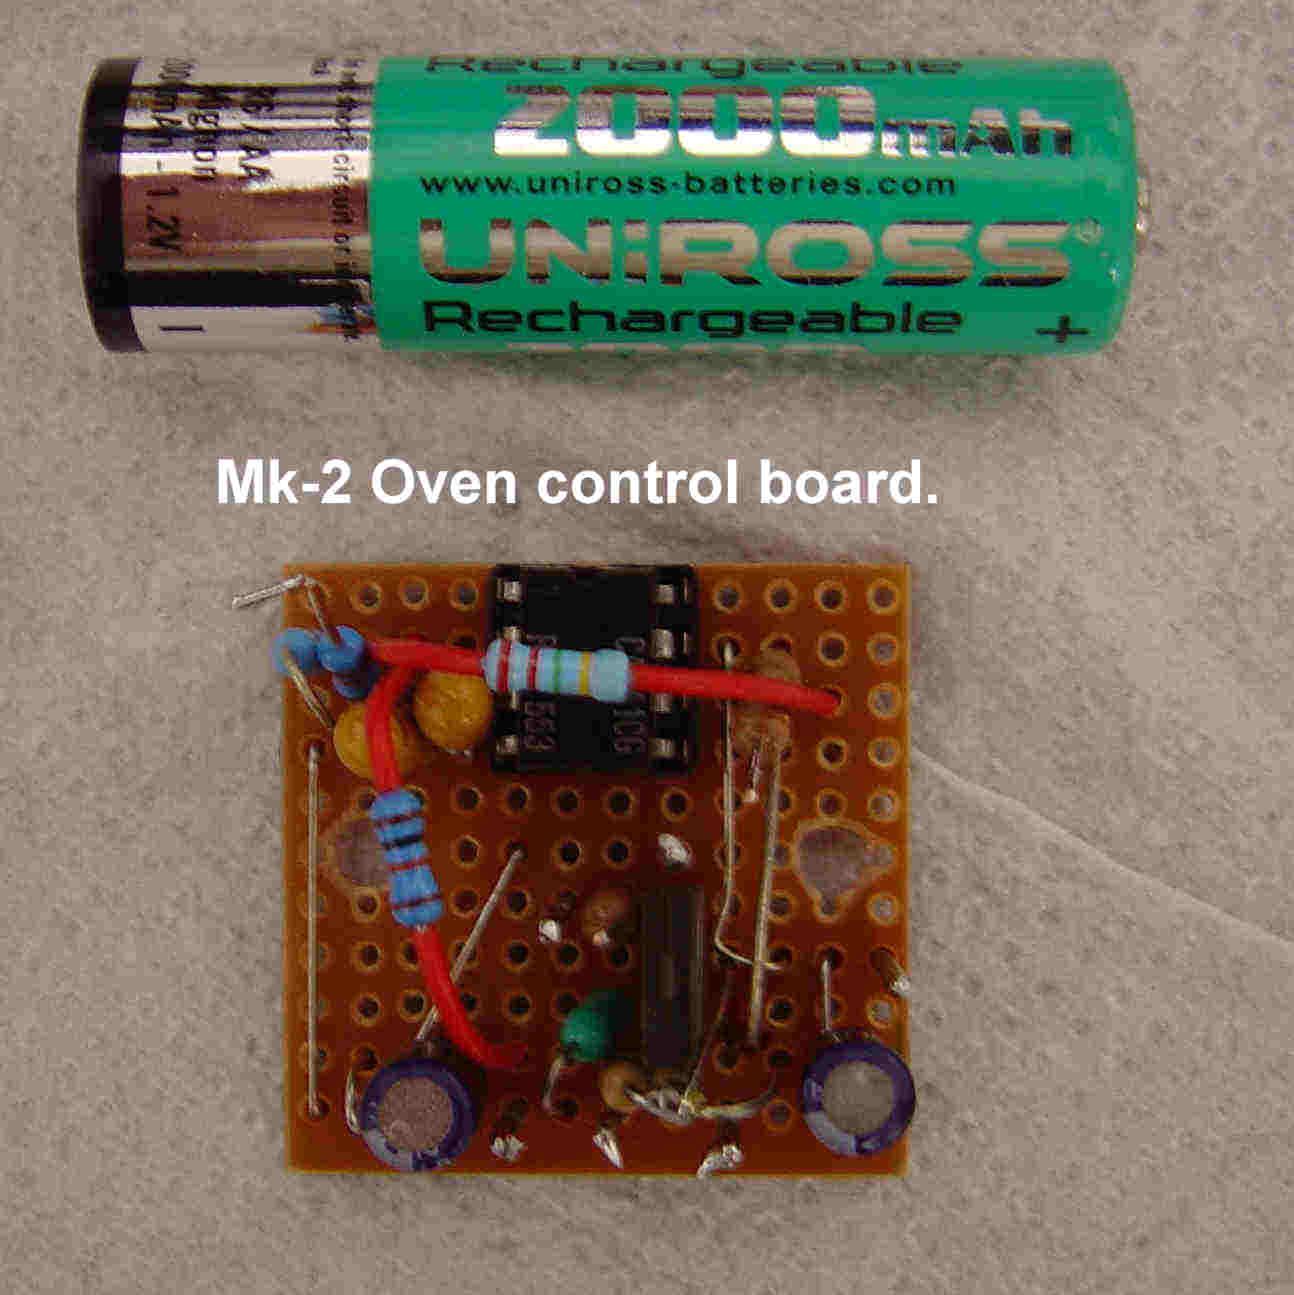 Crystal Ovens Homemade Oven Wiring Diagram Mk 2 Control Board Thumbnail